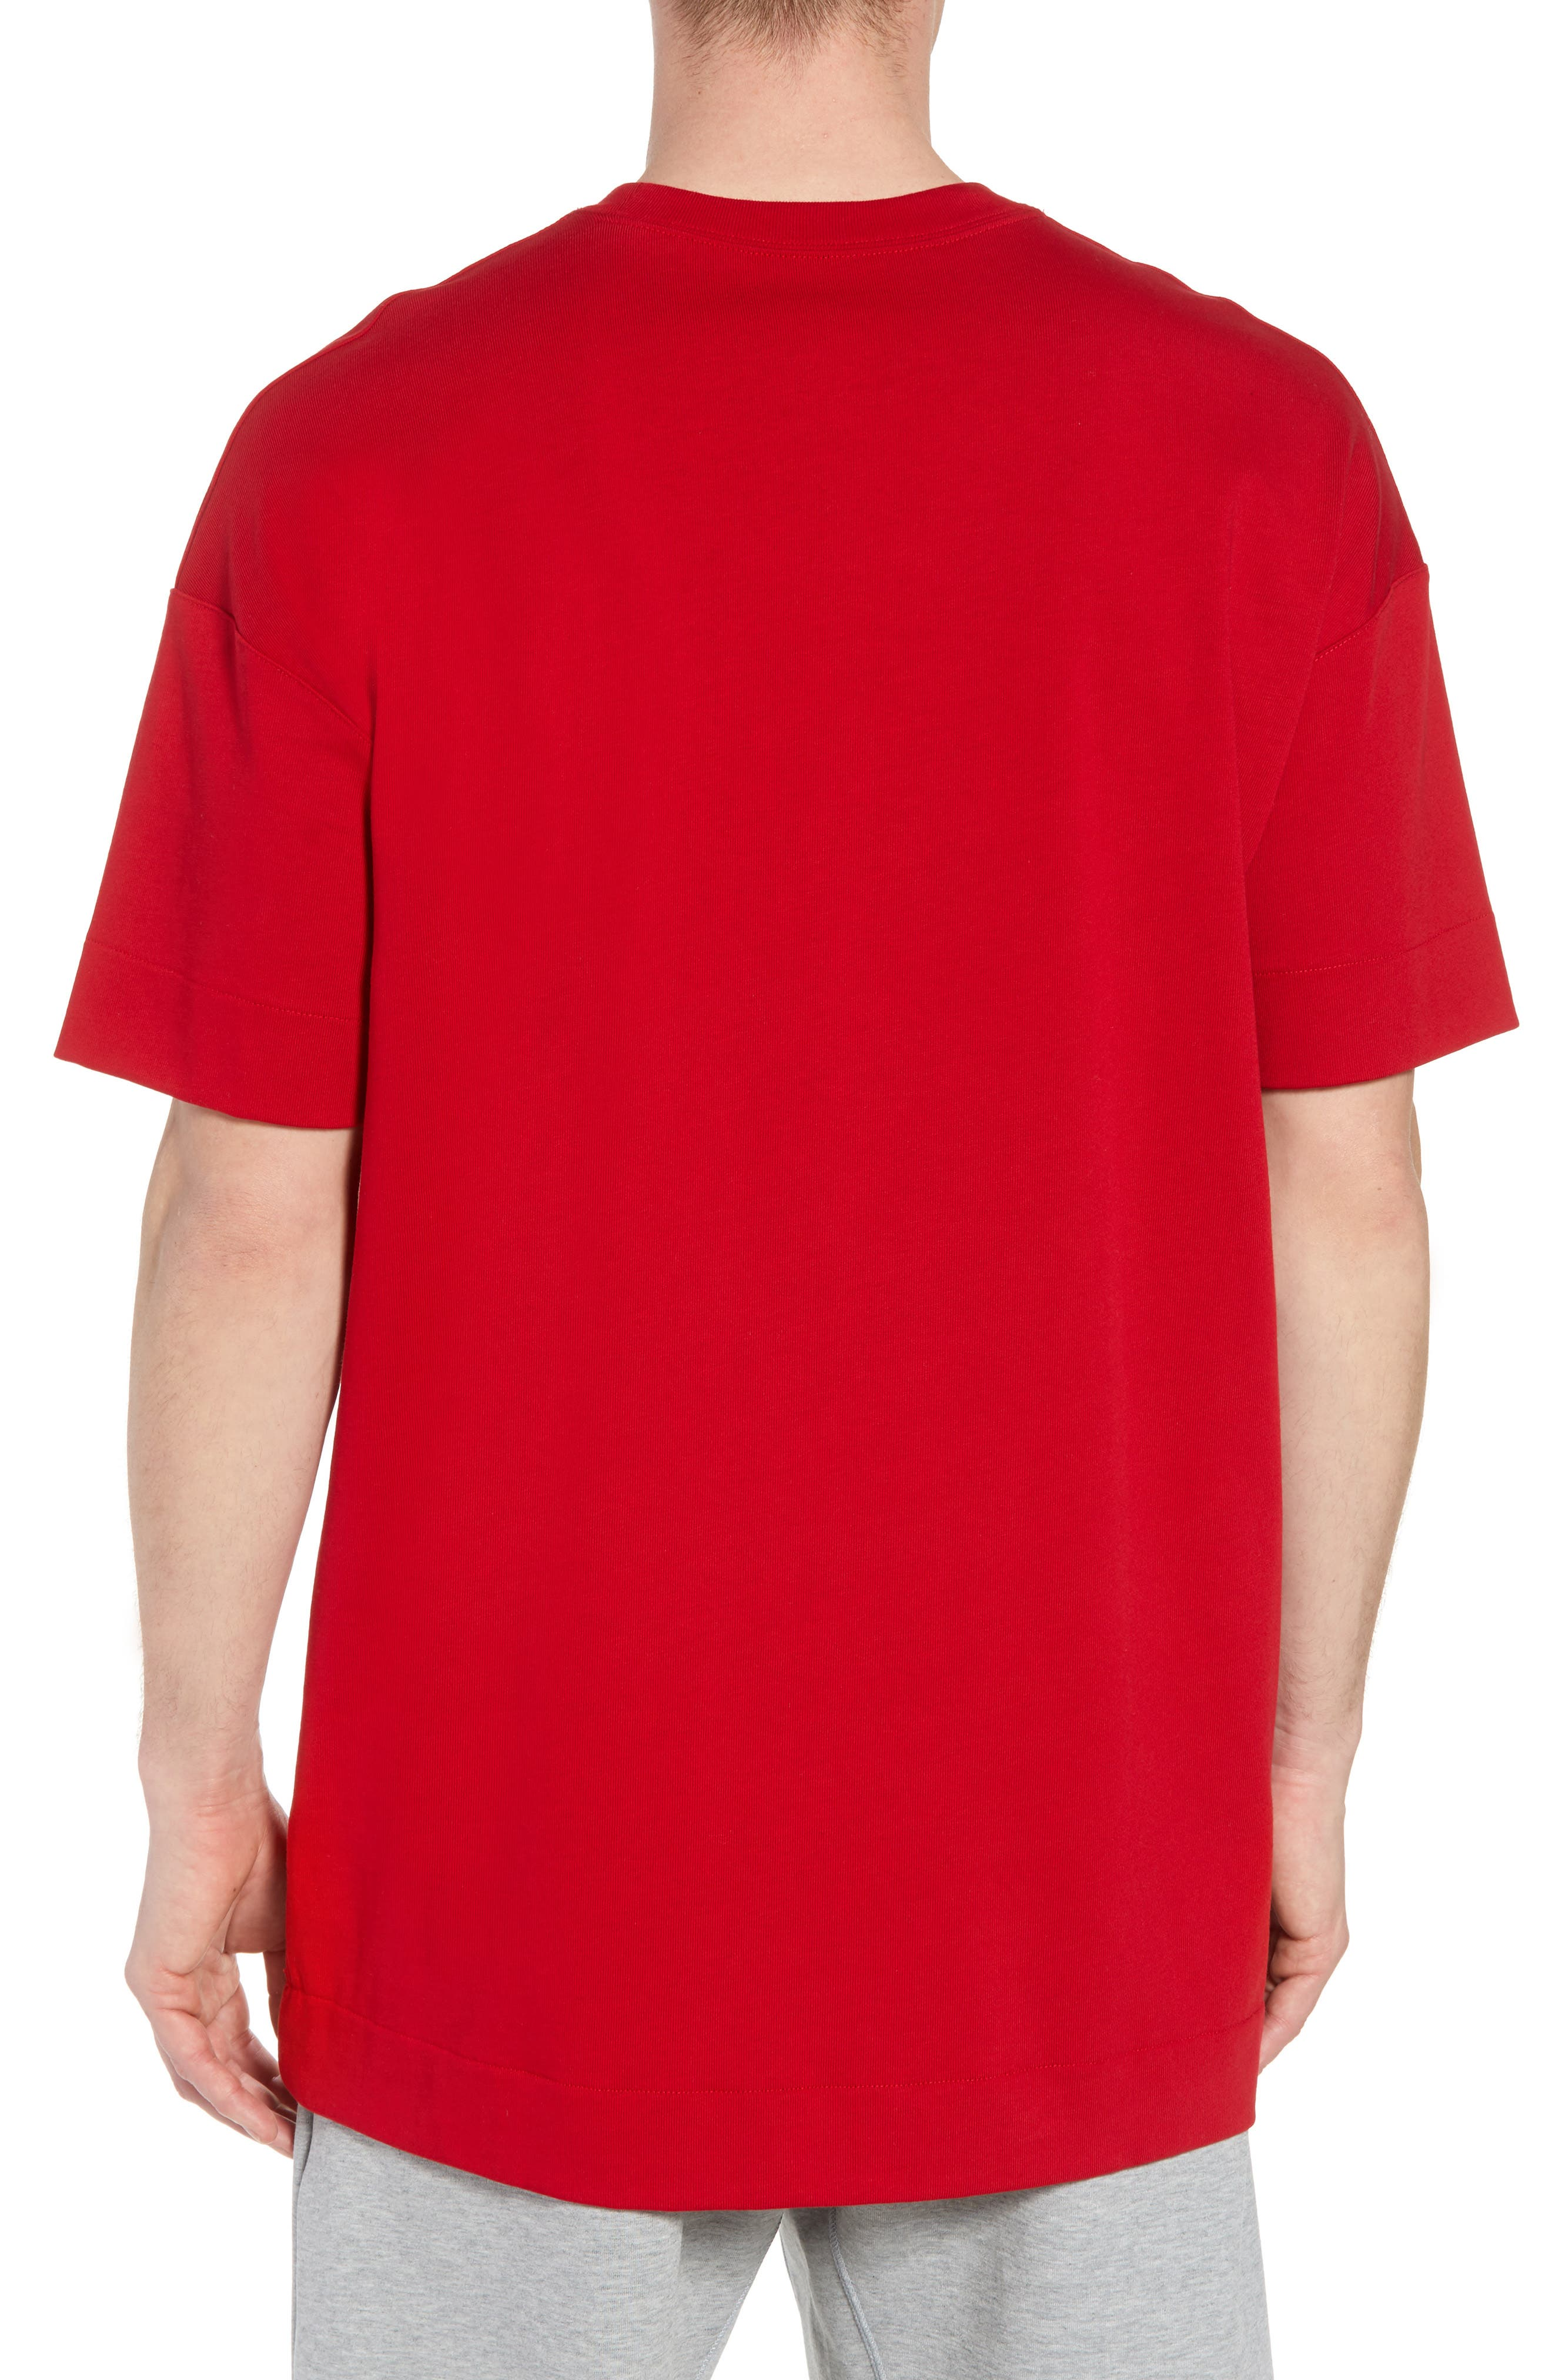 Nike Oversize 23 Graphic T-Shirt,                             Alternate thumbnail 2, color,                             GYM RED/ WHITE